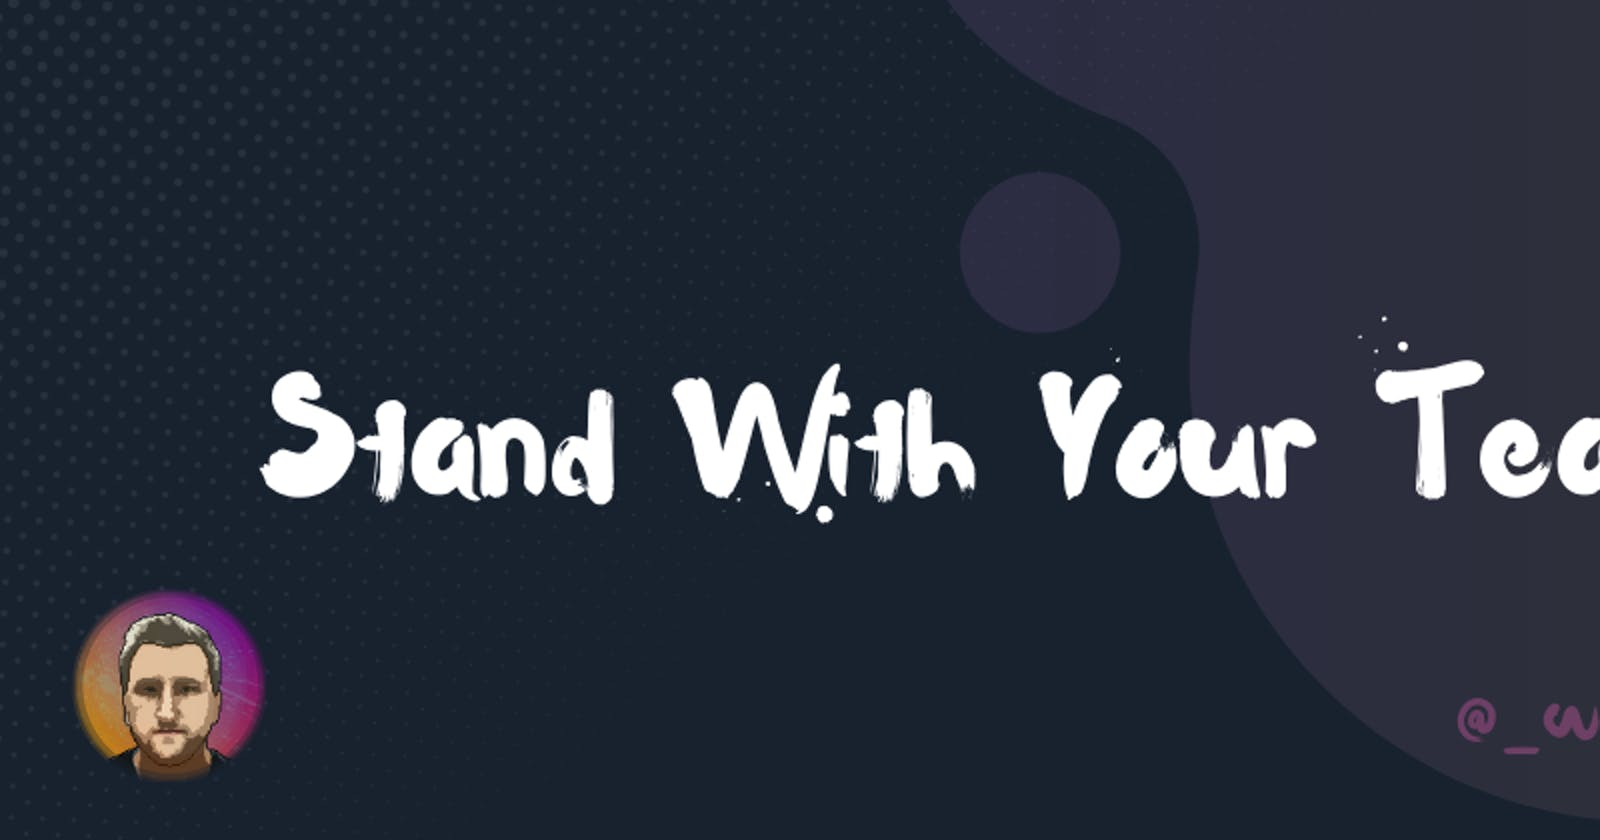 Stand With Your Team